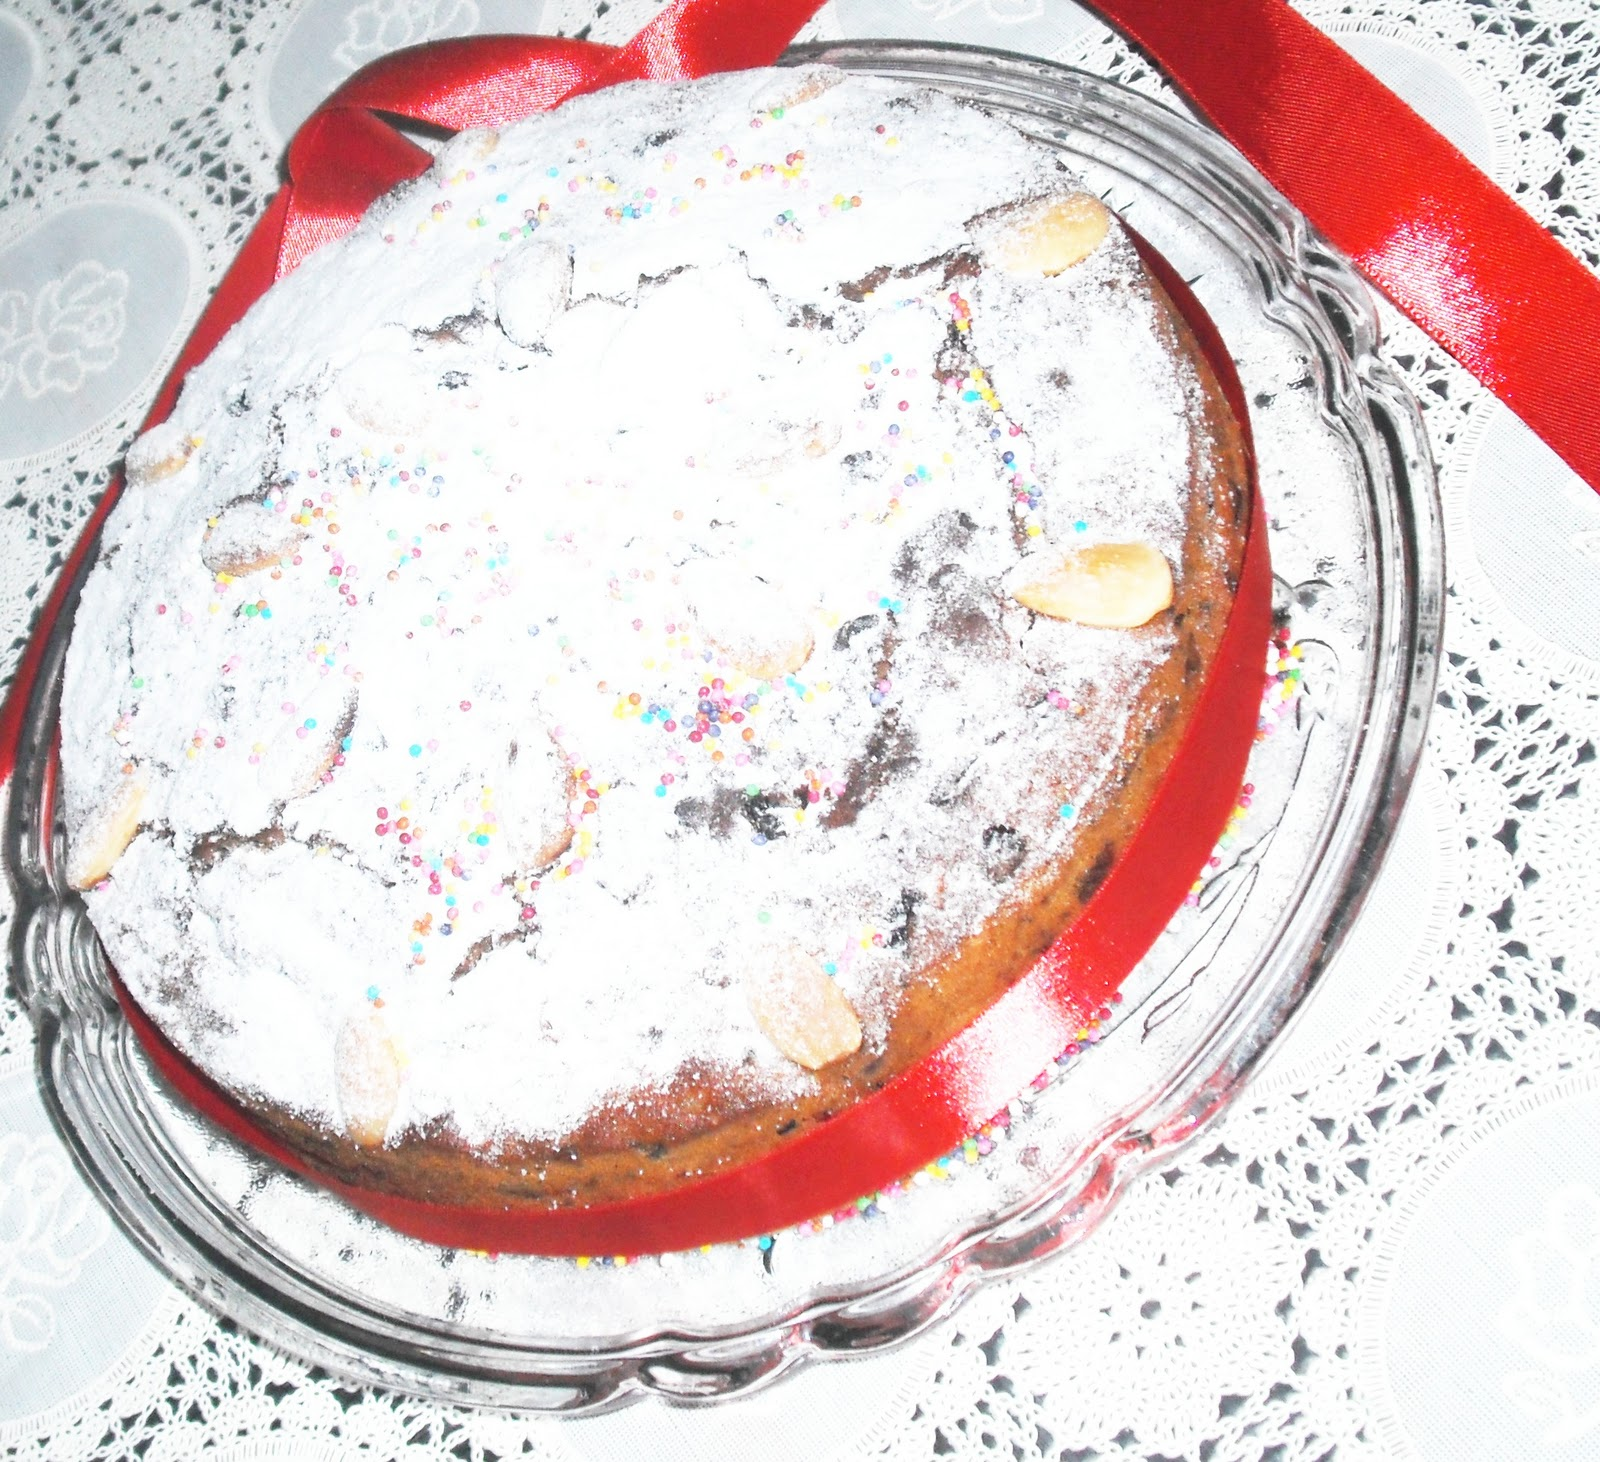 Christmas Wishes Cake Images : Merry Christmas Wishes with Cake, Red Wine & White Wine